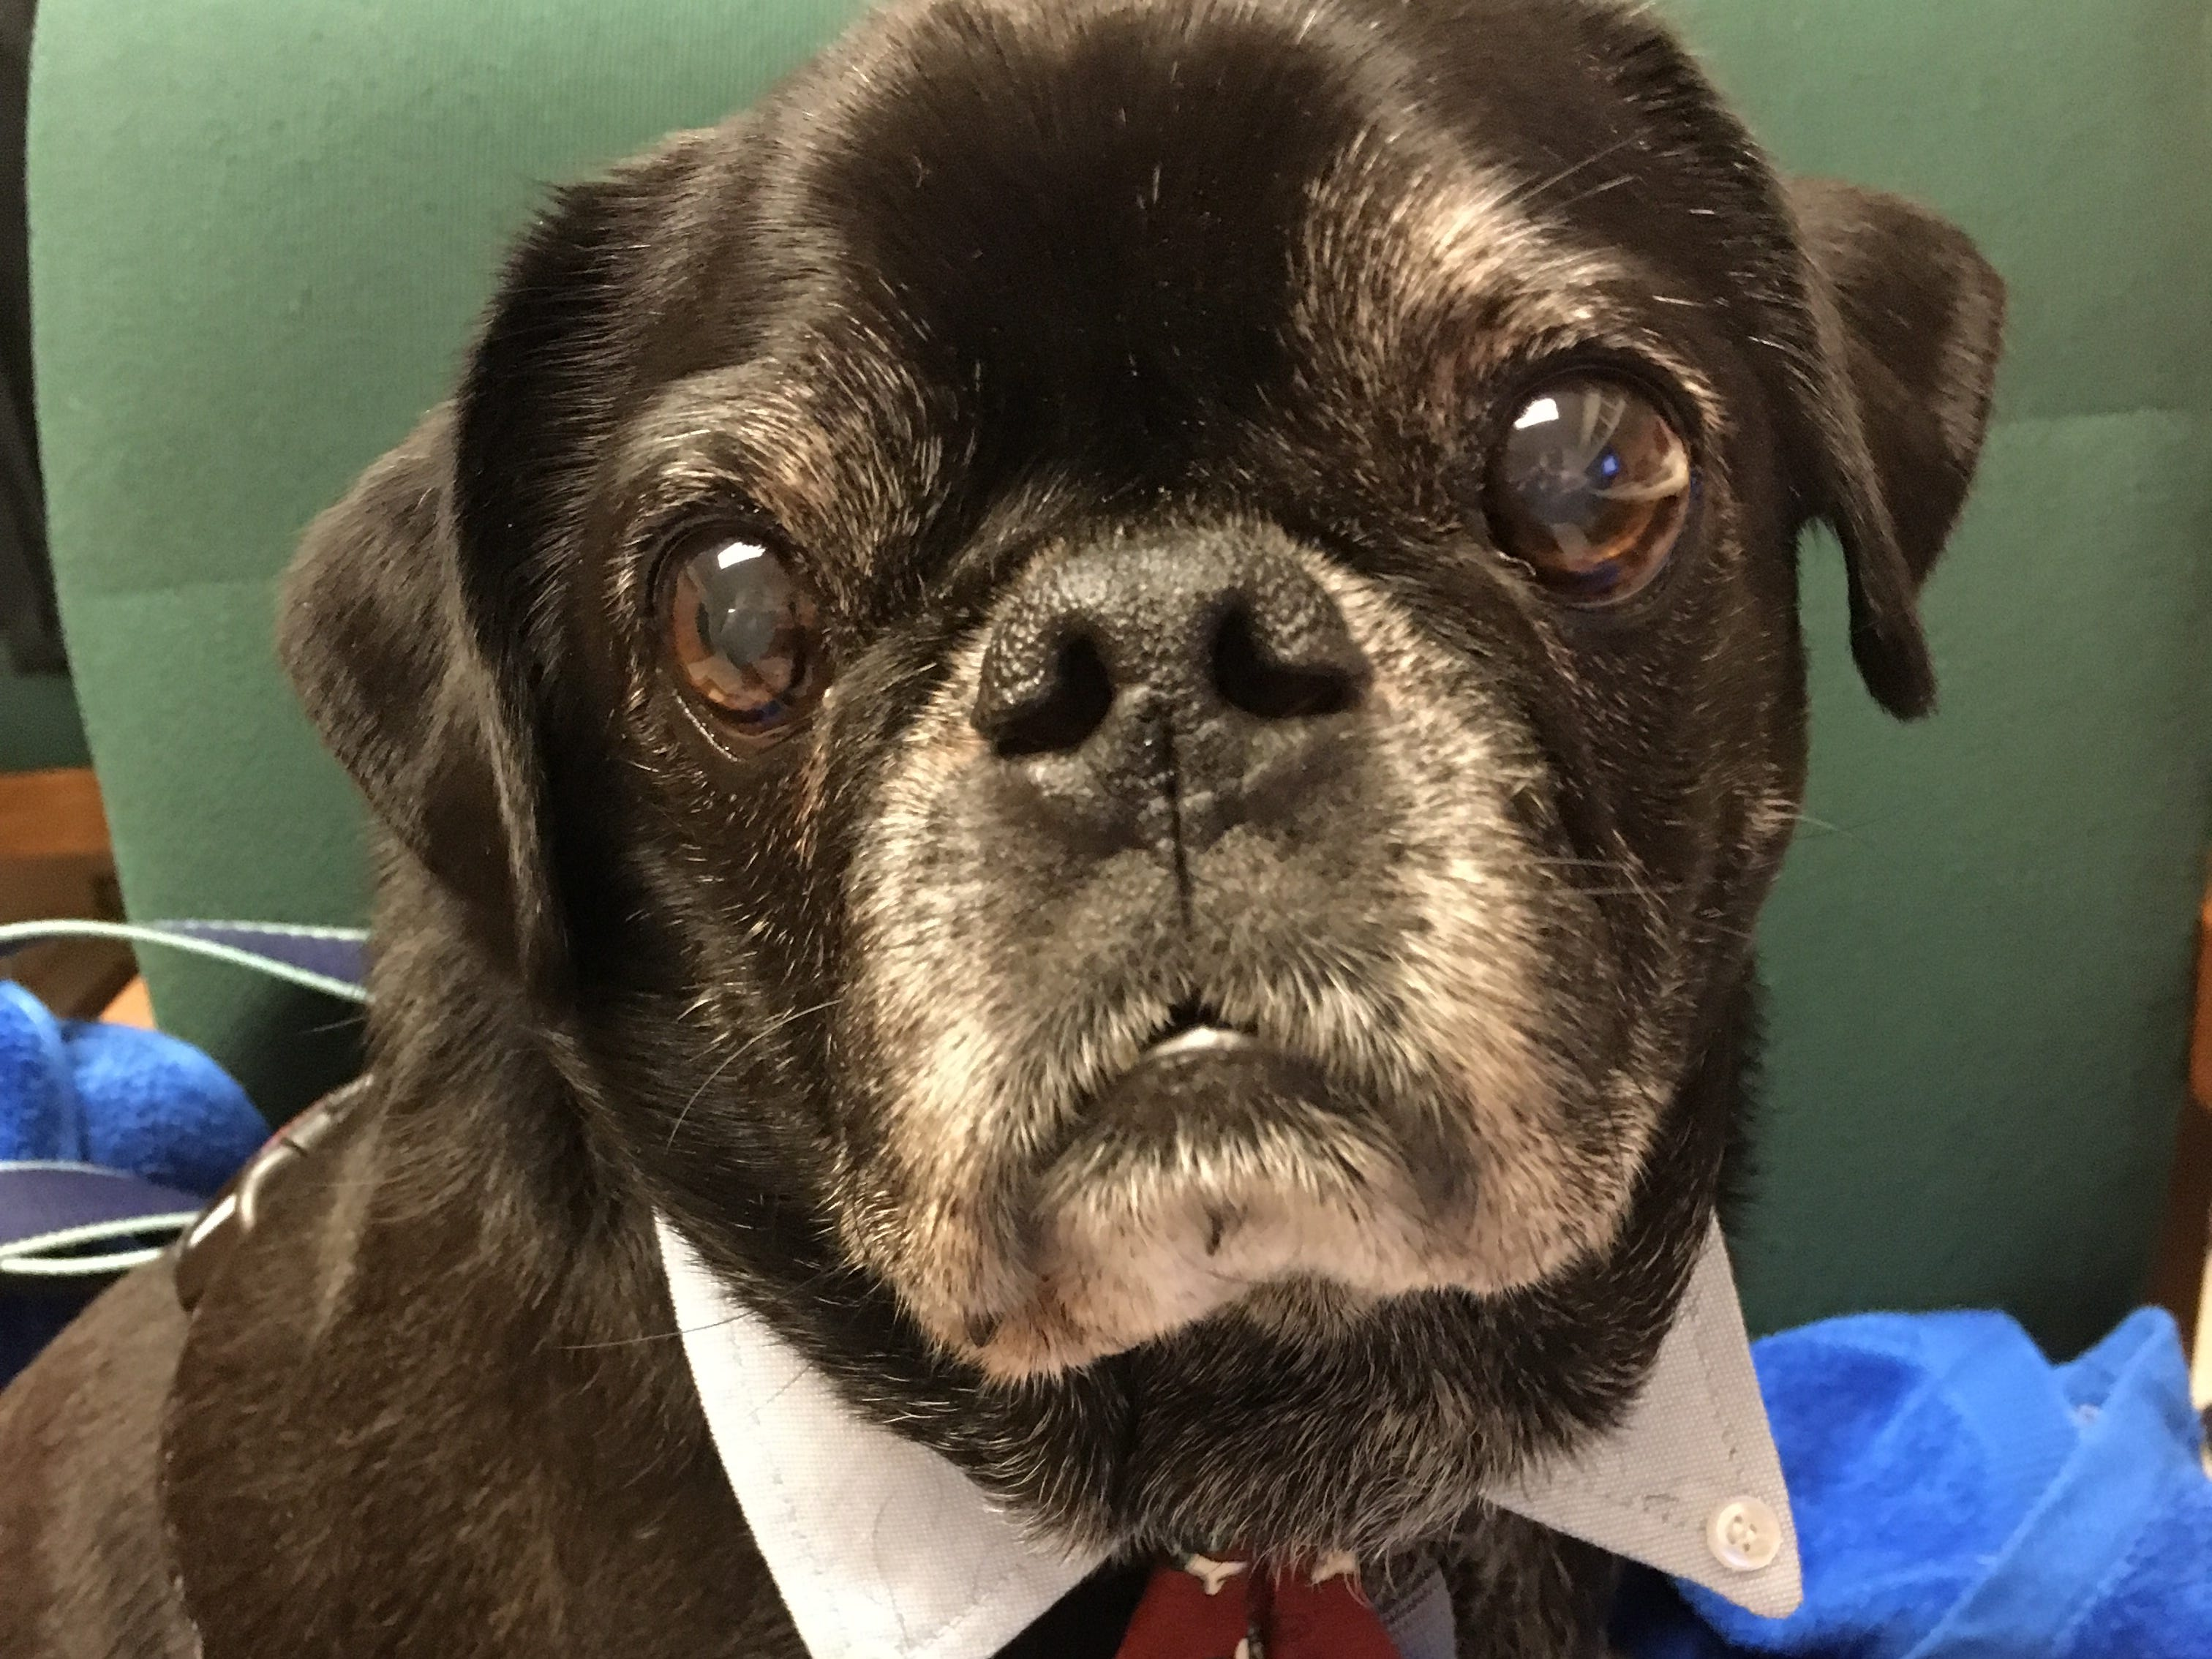 """Patricia Connell shared this photo of her pug Phineas at her office. """"This is how he dresses when he goes to work with me,"""" she wrote."""